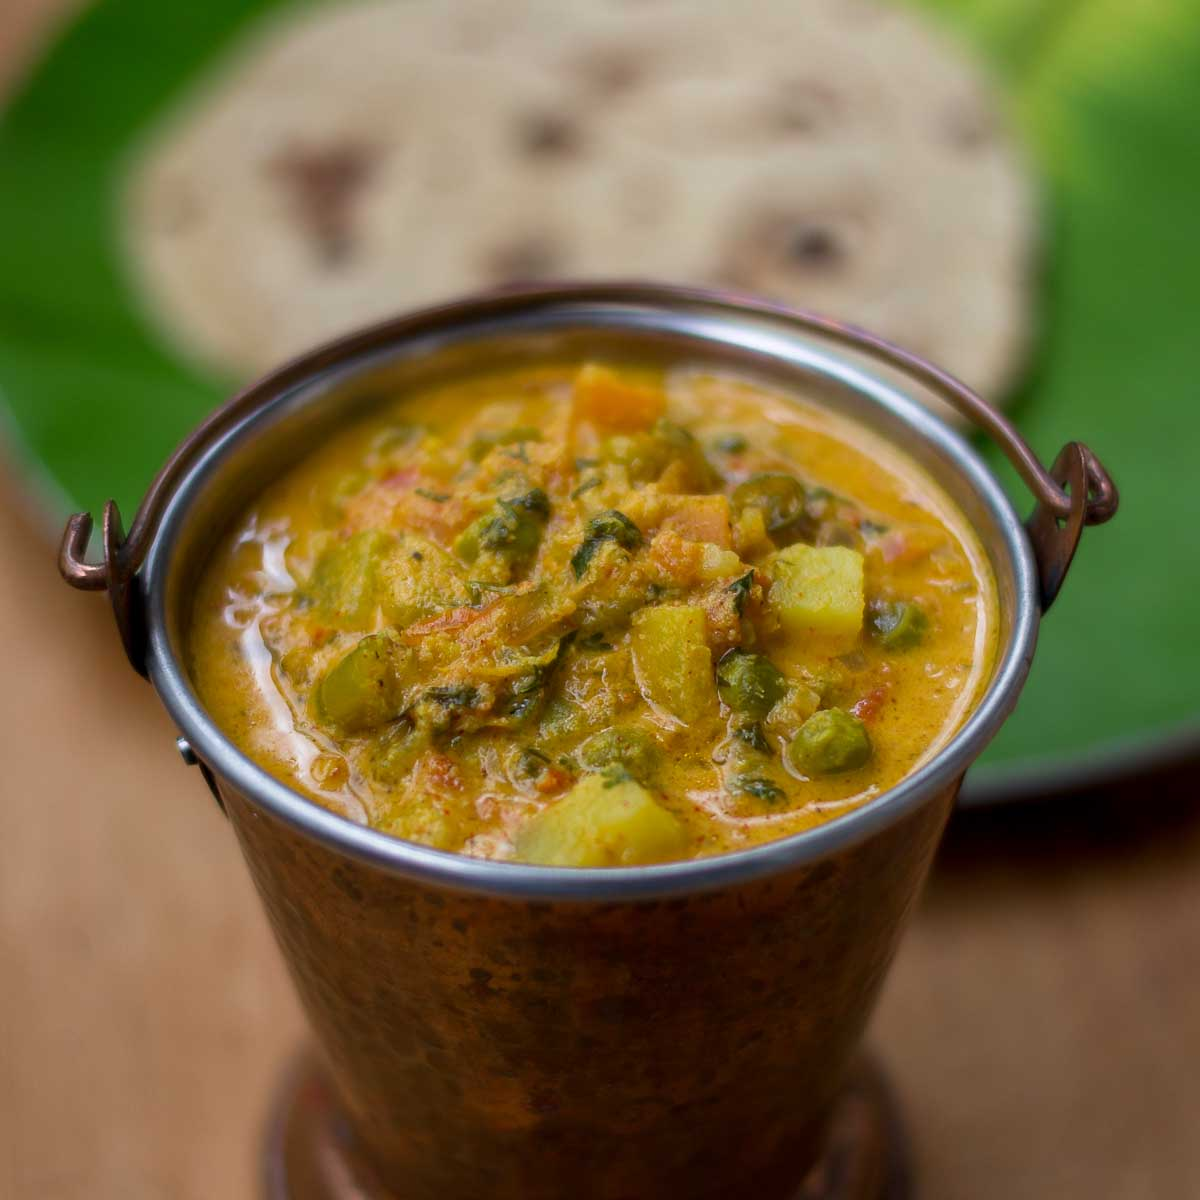 Hotel saravana bhavan parotta kurma recipe vegetable kurma recipe forumfinder Gallery